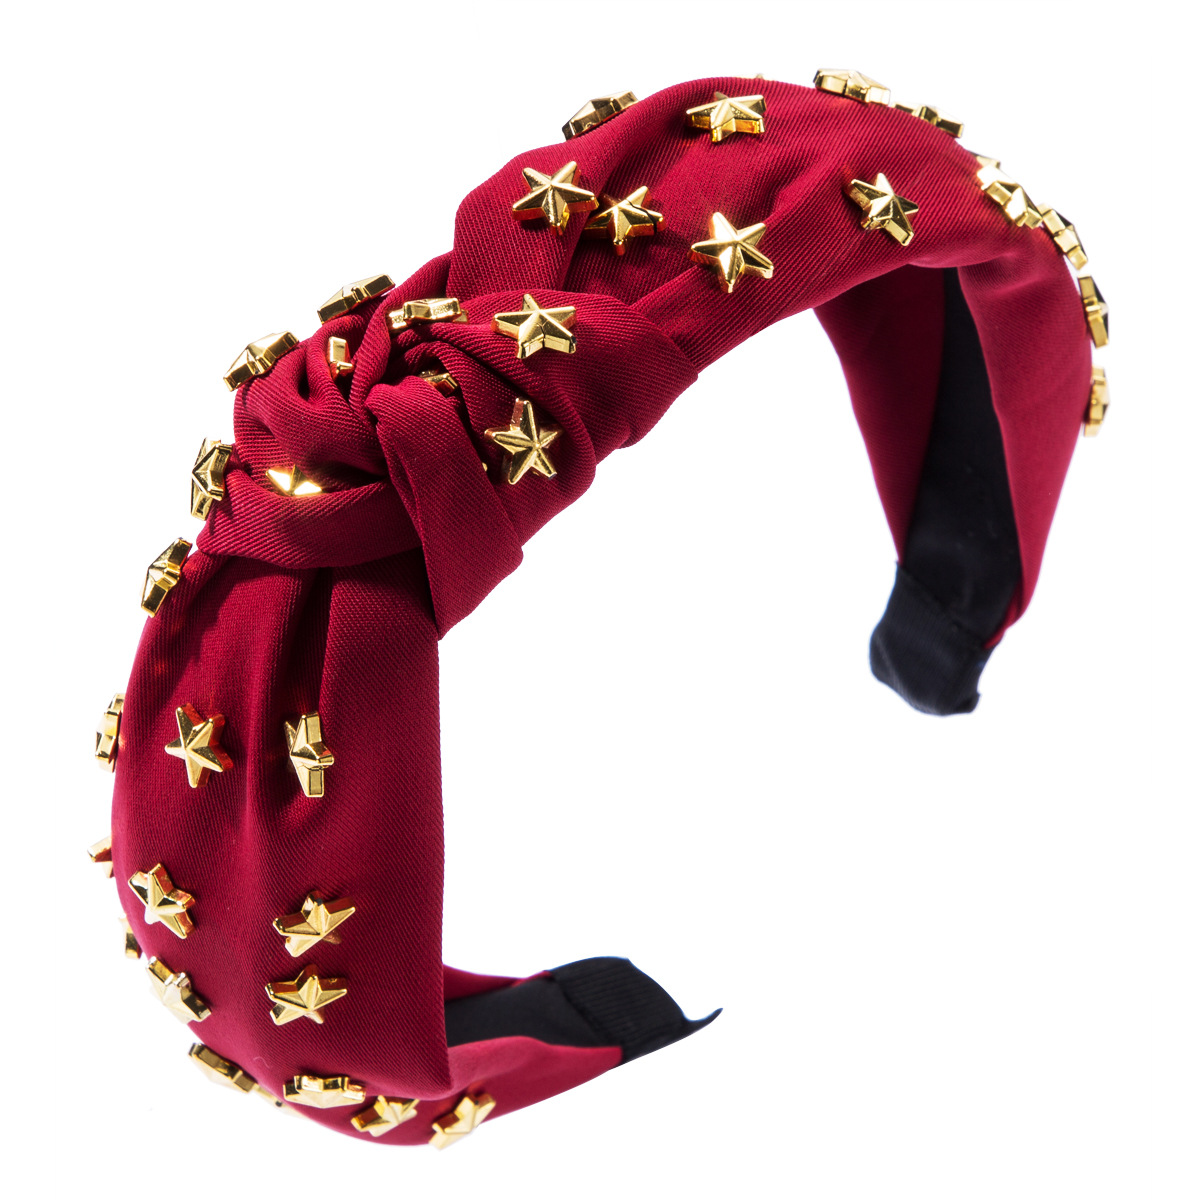 Alloy five-pointed star fabric headband new knotted headband NHJE174389